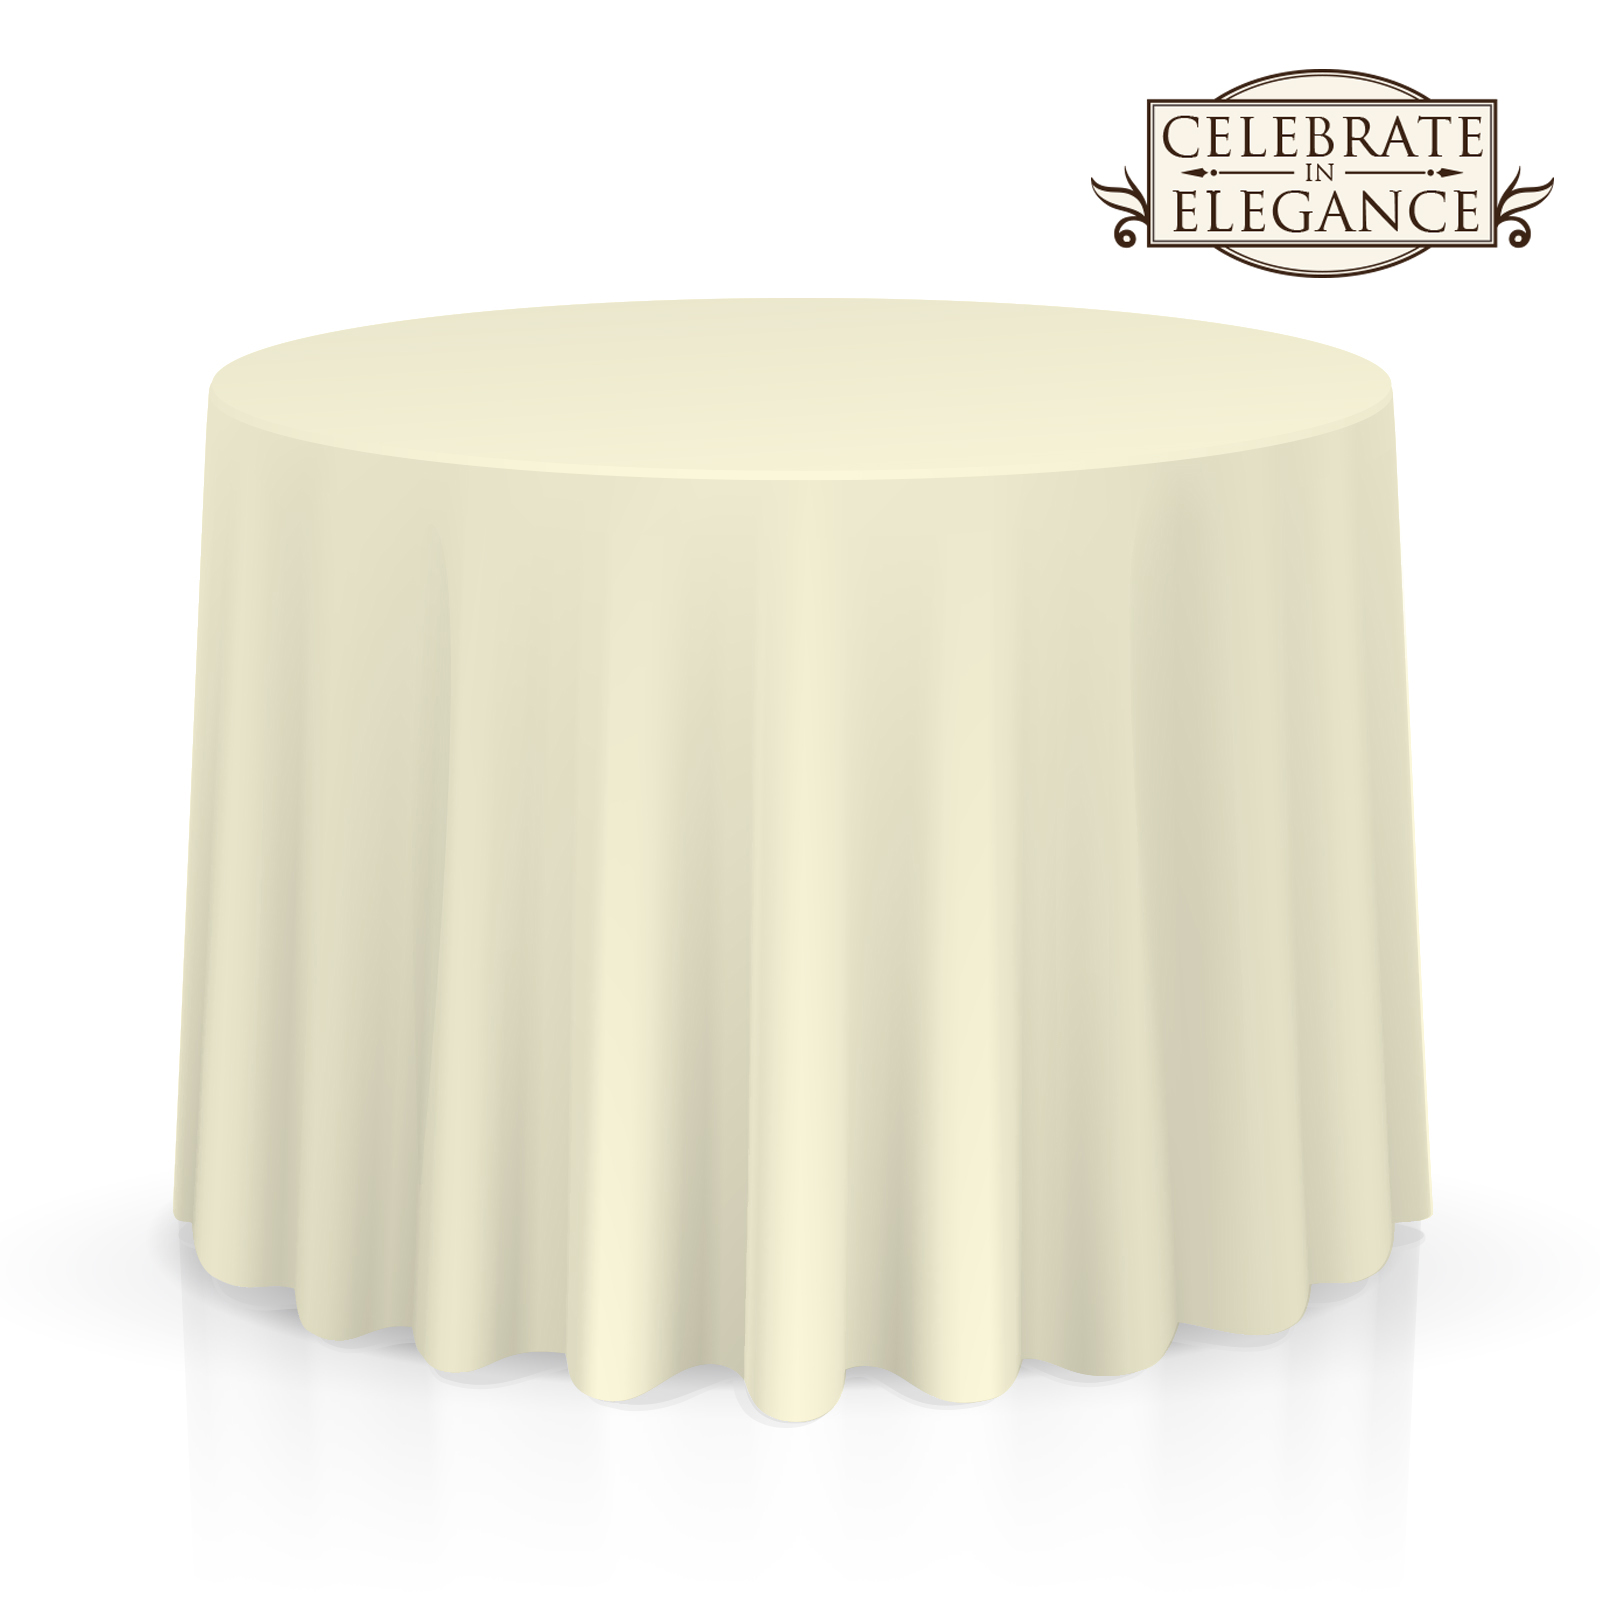 20 Pack Round Wedding Banquet Polyester Fabric Tablecloths